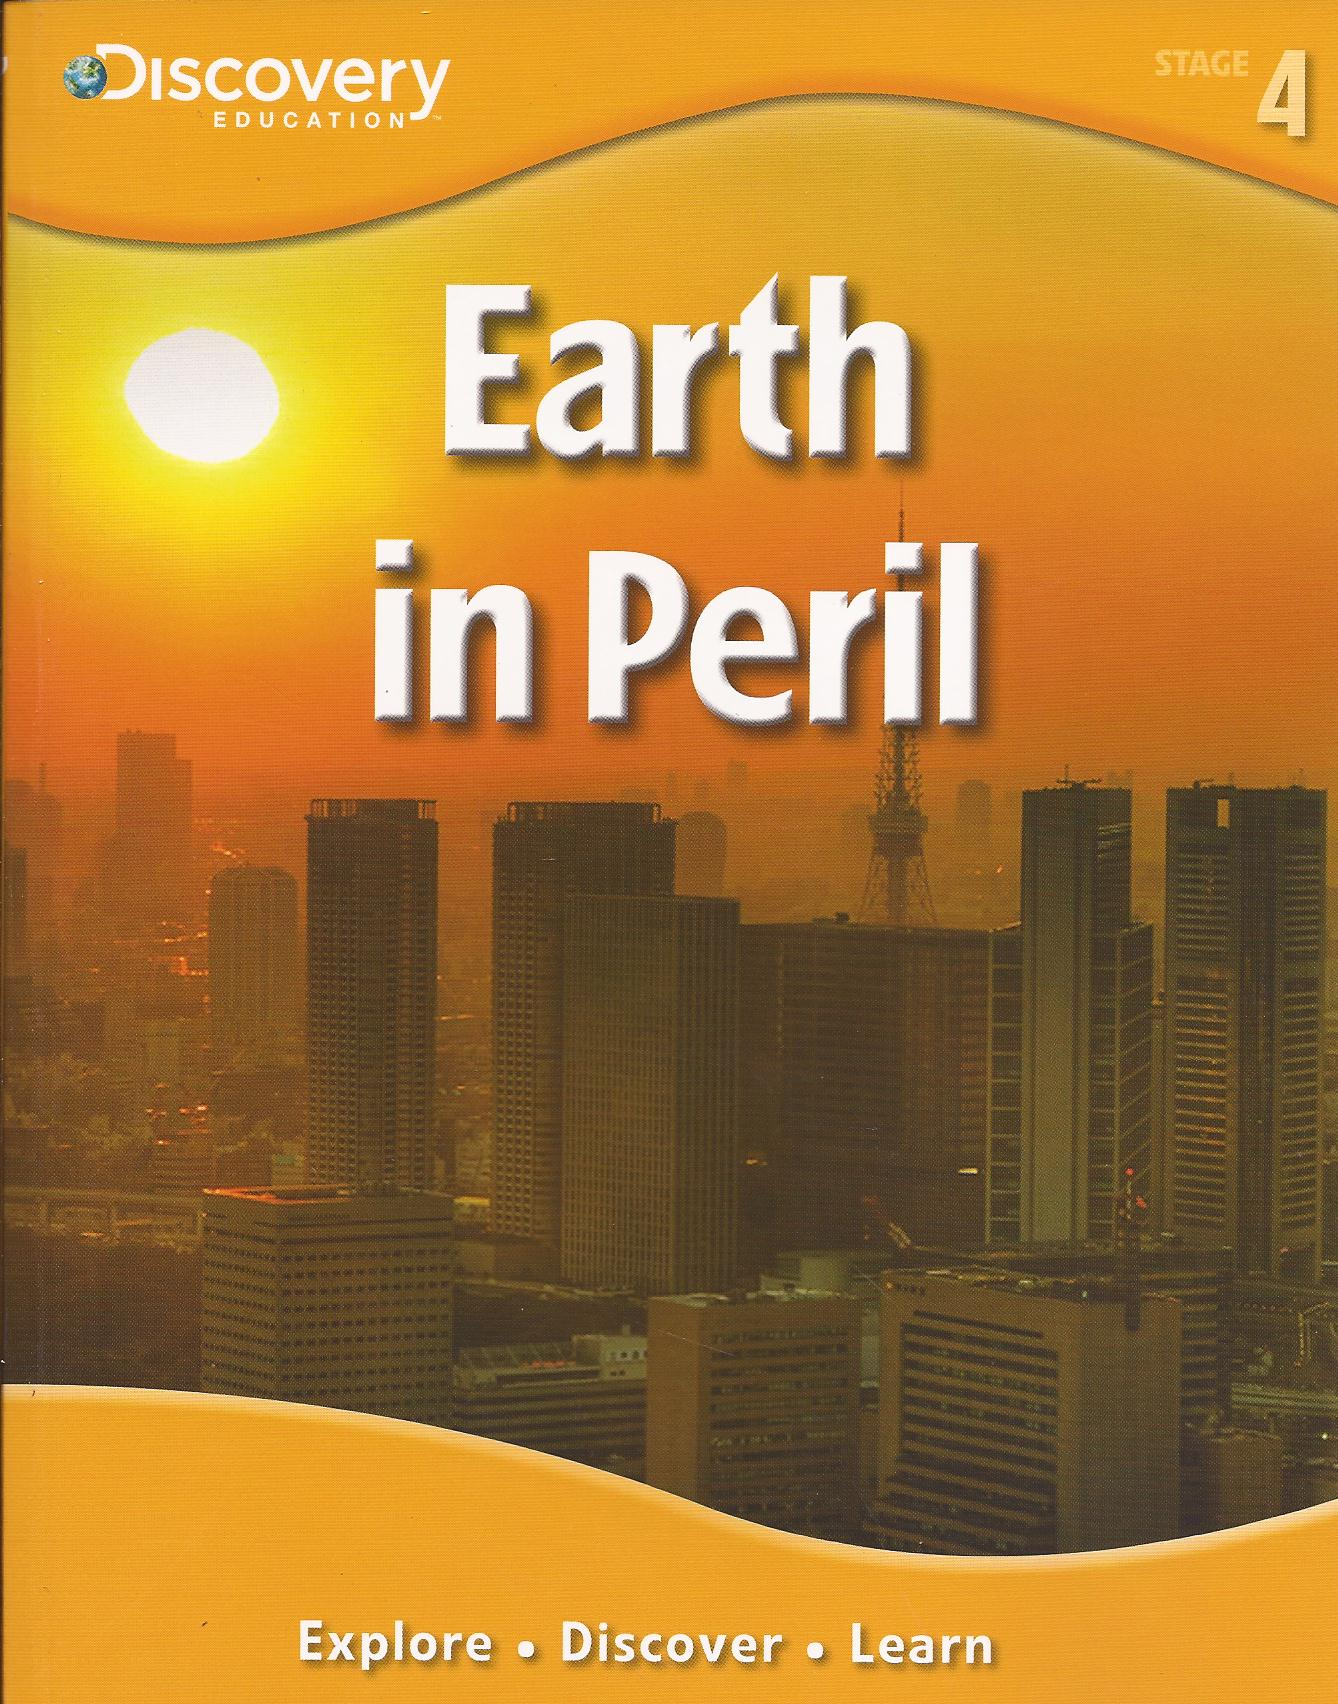 Earth in Peril